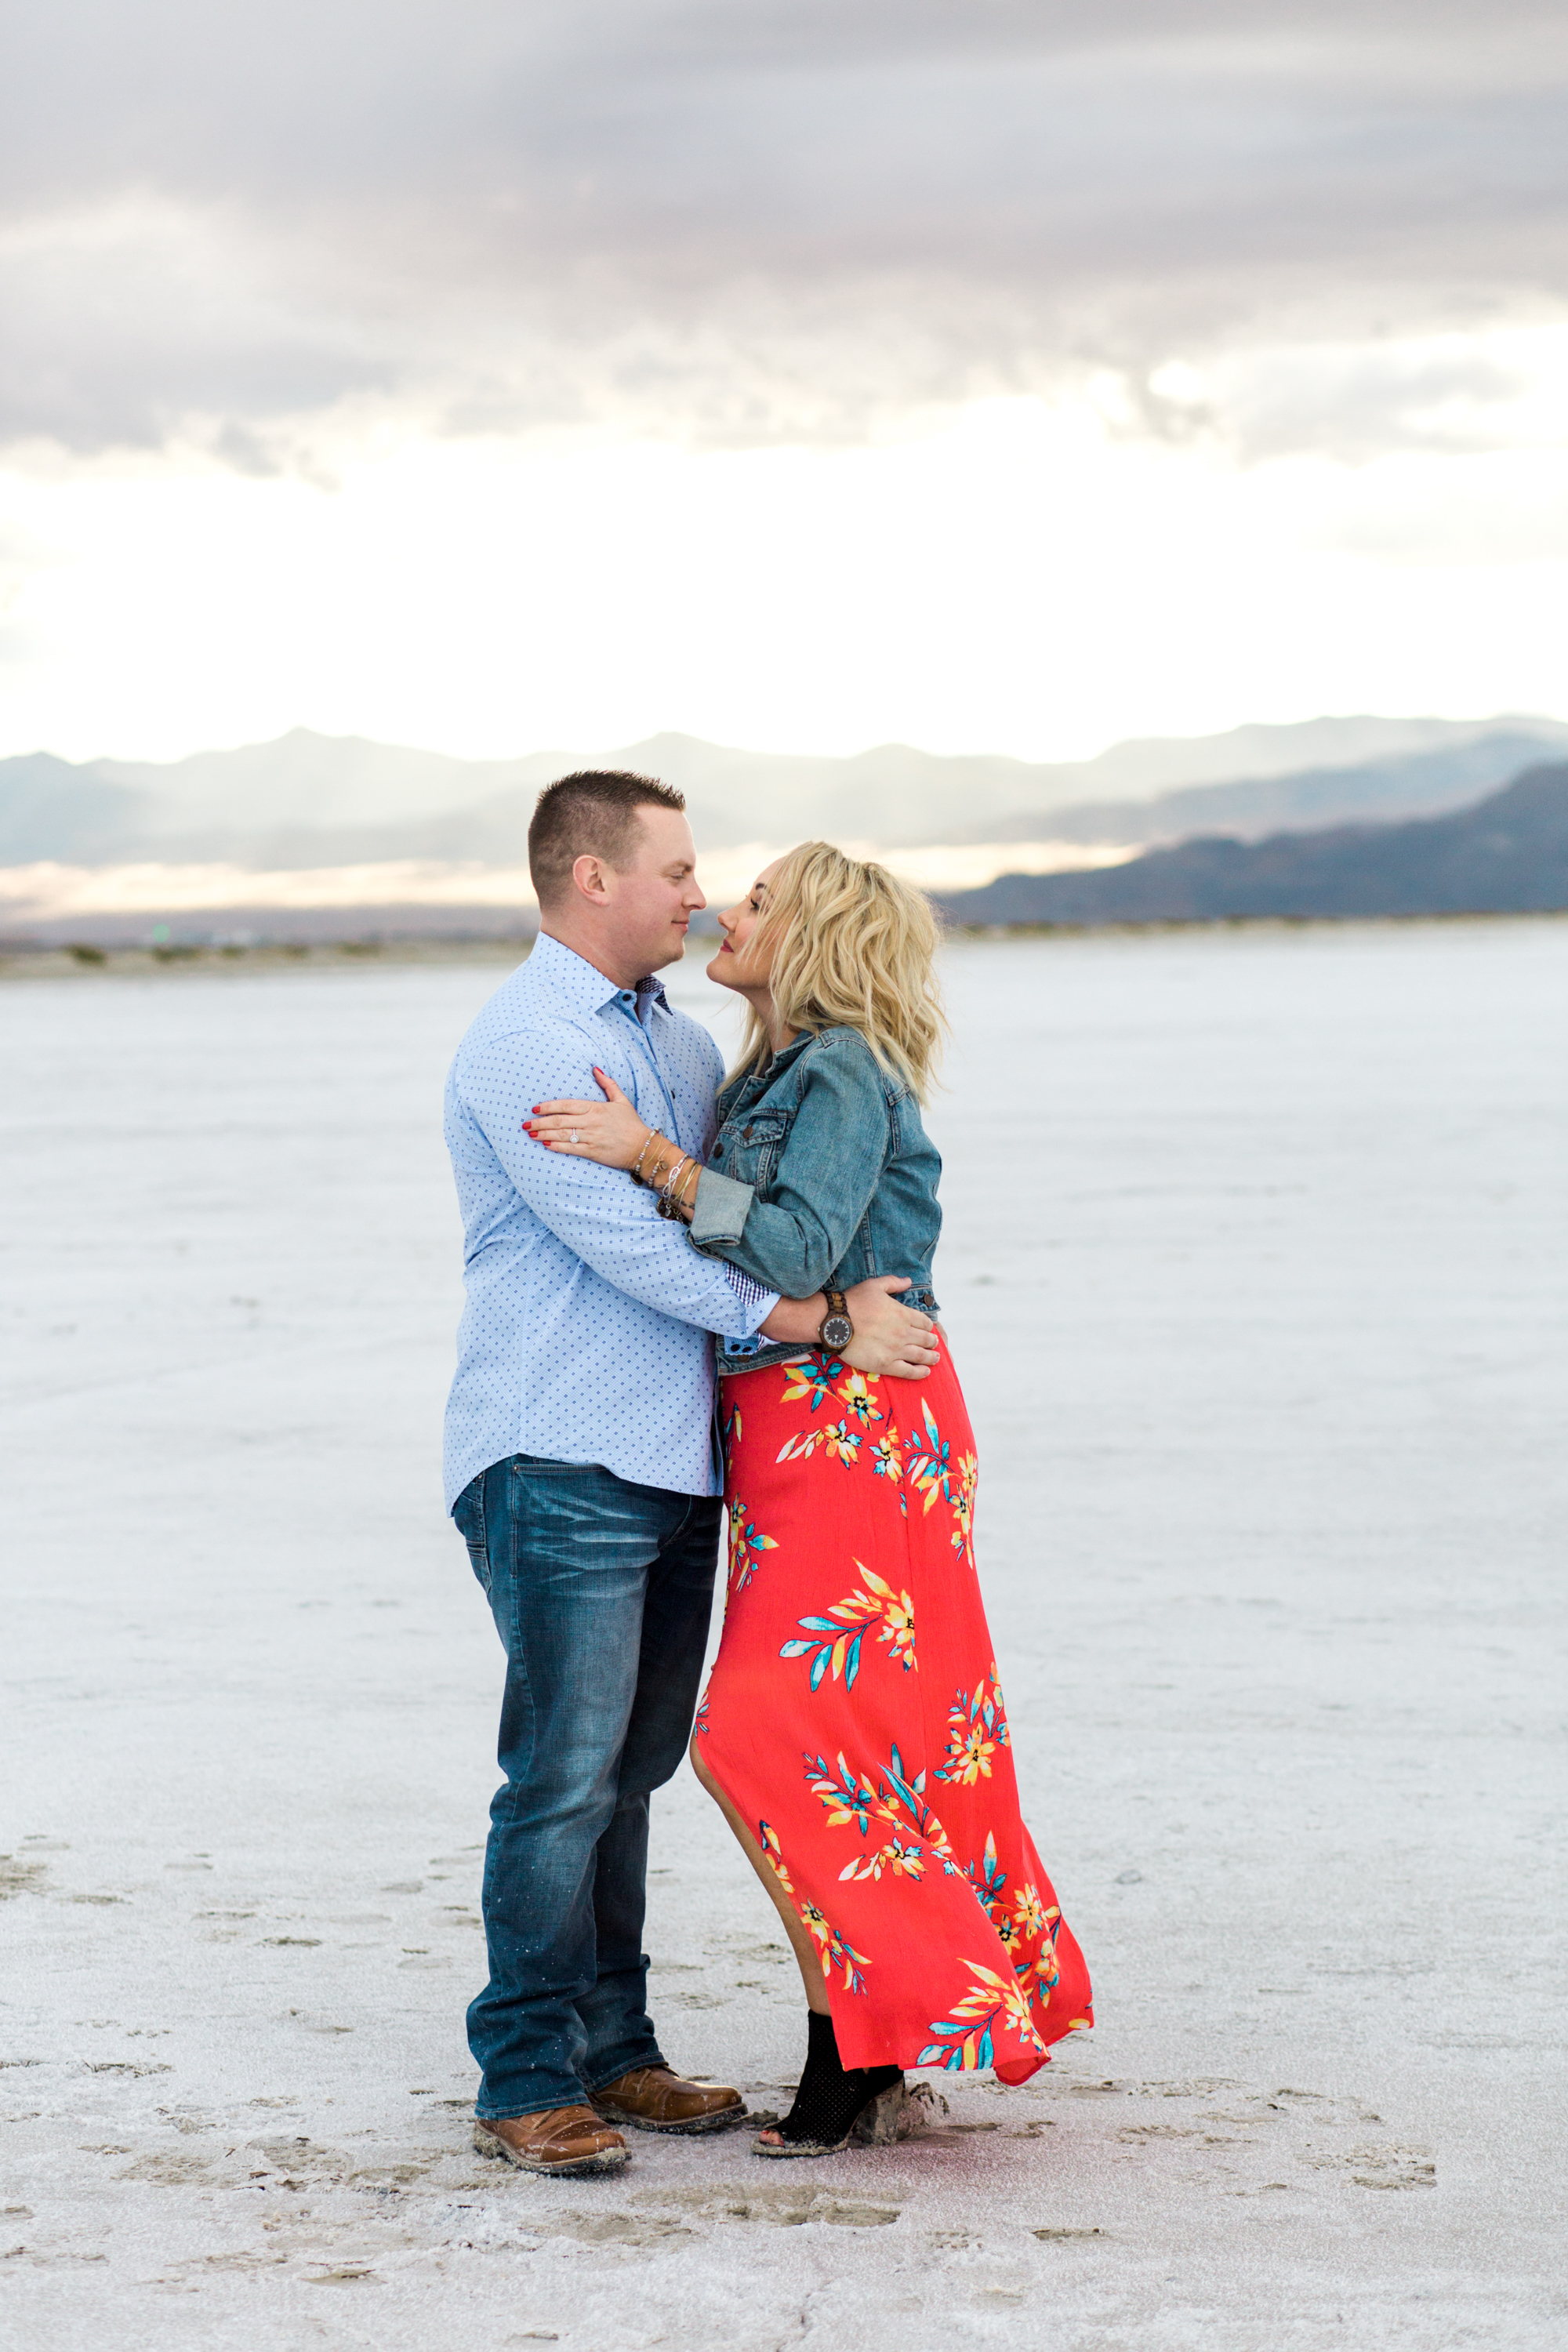 Tara-Mike-Engagements-99.jpg